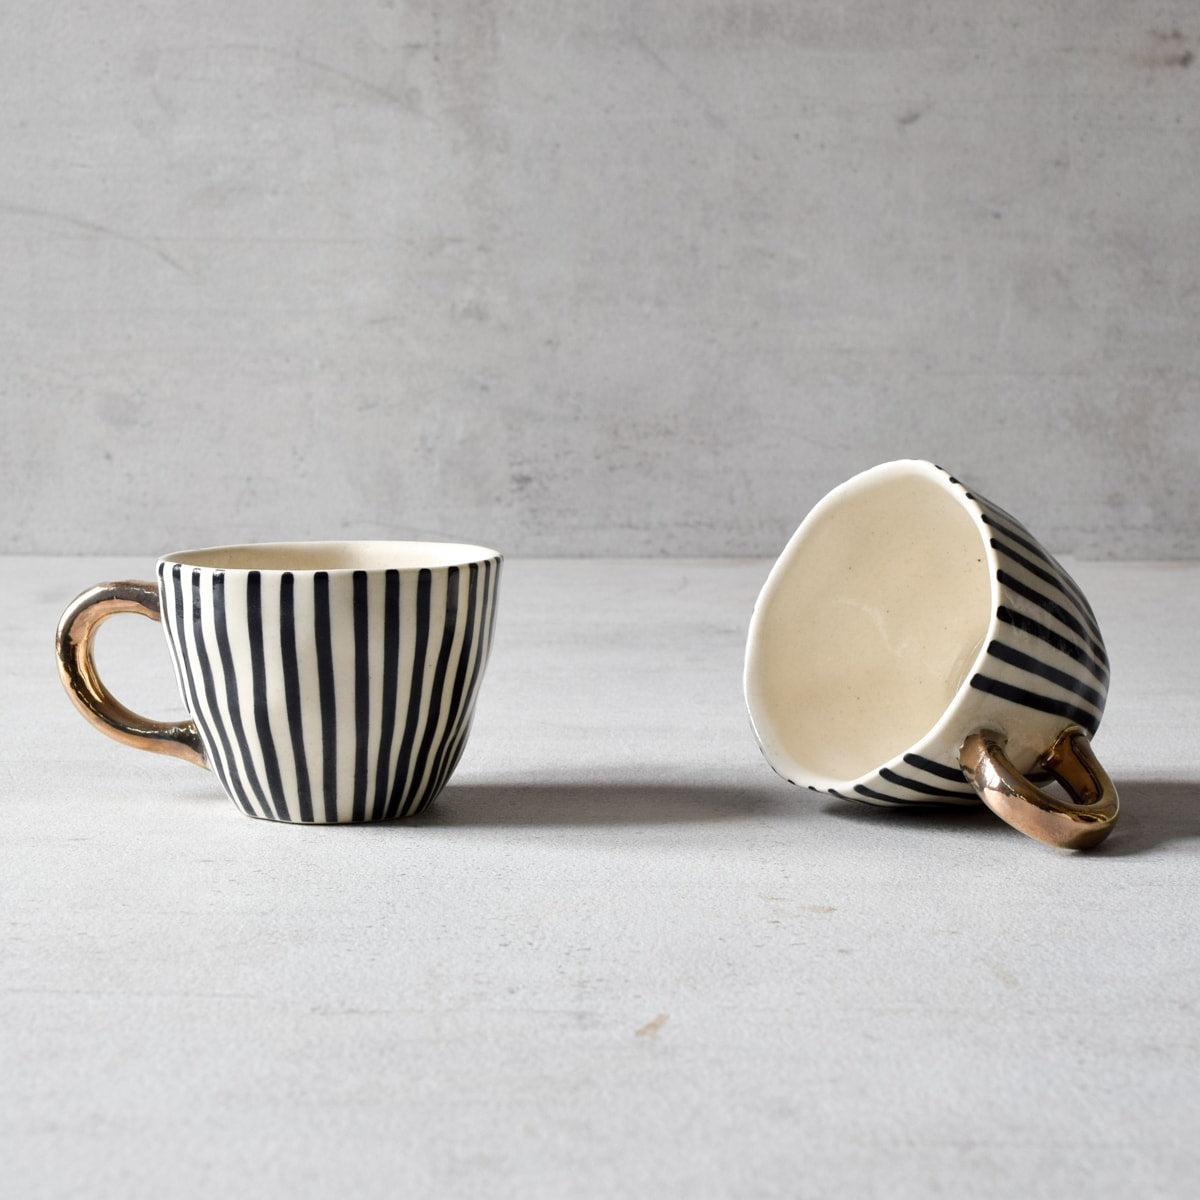 Ella Black Vertical Striped Ceramic Cup with Golden Handle - Home Artisan_1